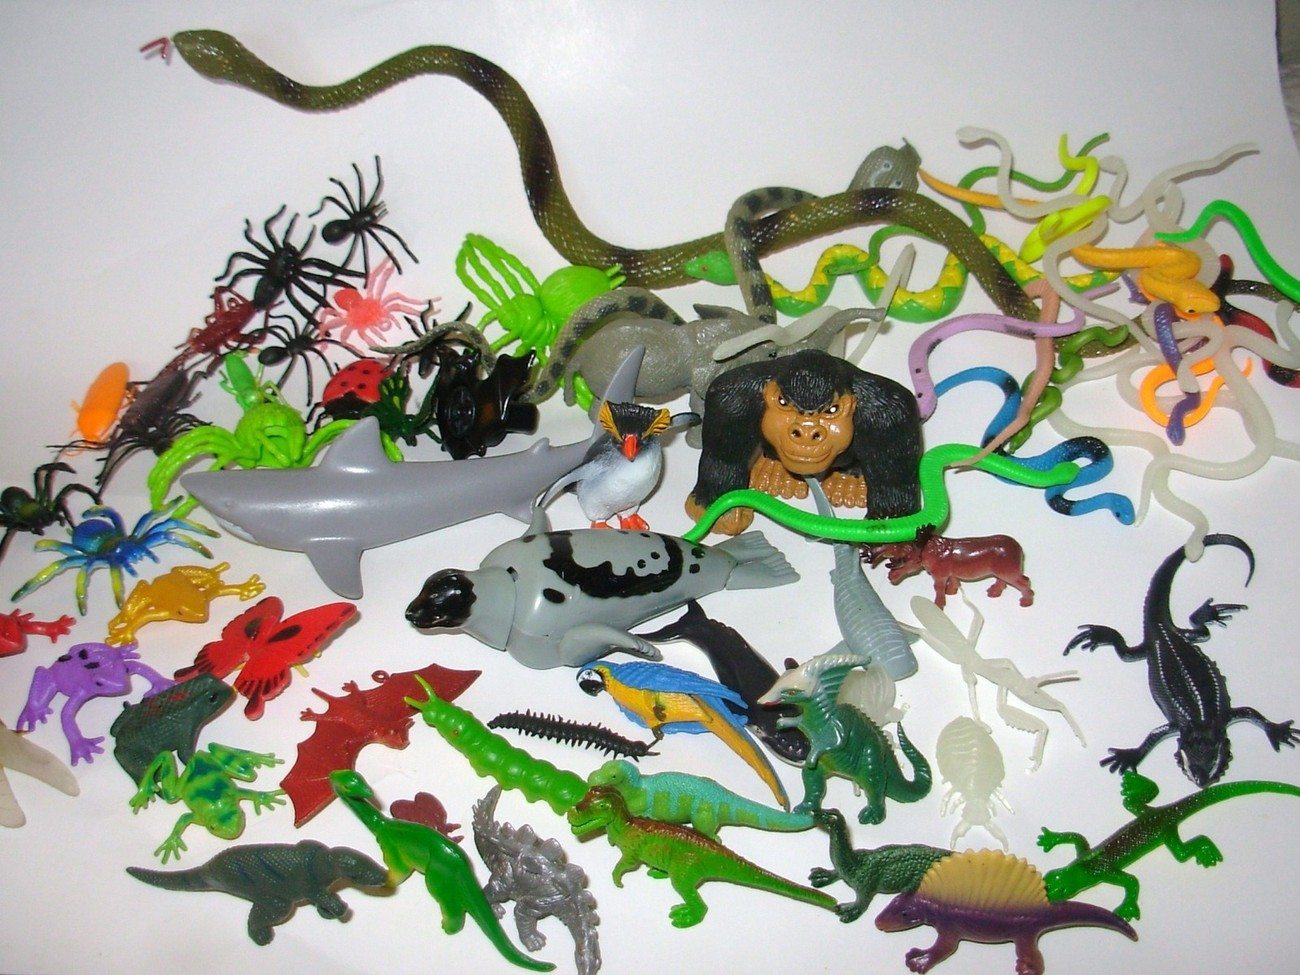 Rubber Snakes For Garden.Search Results For Rubber Snakes Pg1 ...